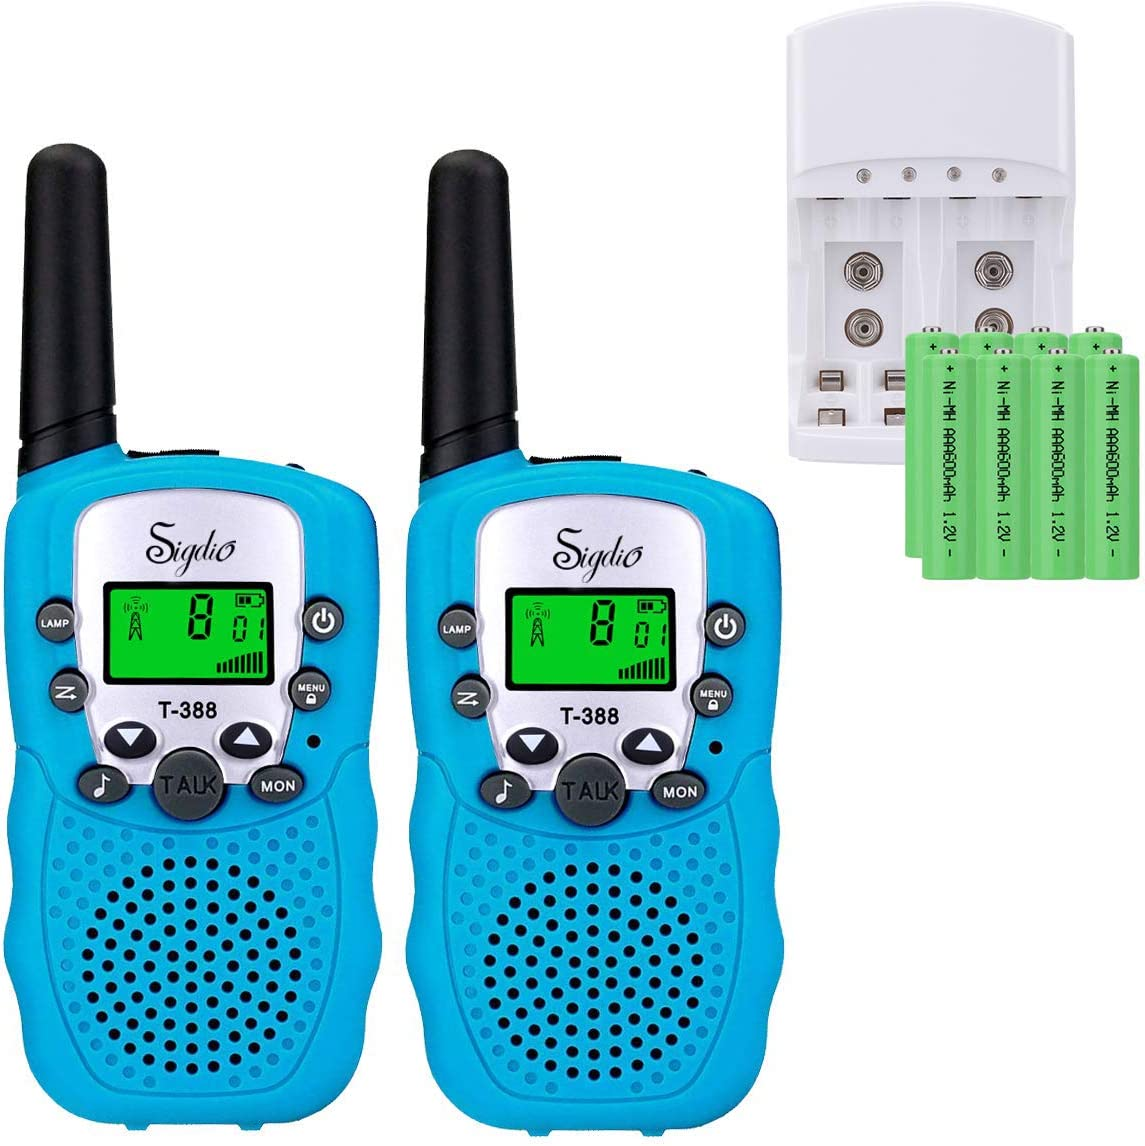 Sigdio Kids Walkie Talkies Rechargeable Walky Talky 22CH FRS 2 Way Radio Kids Toy